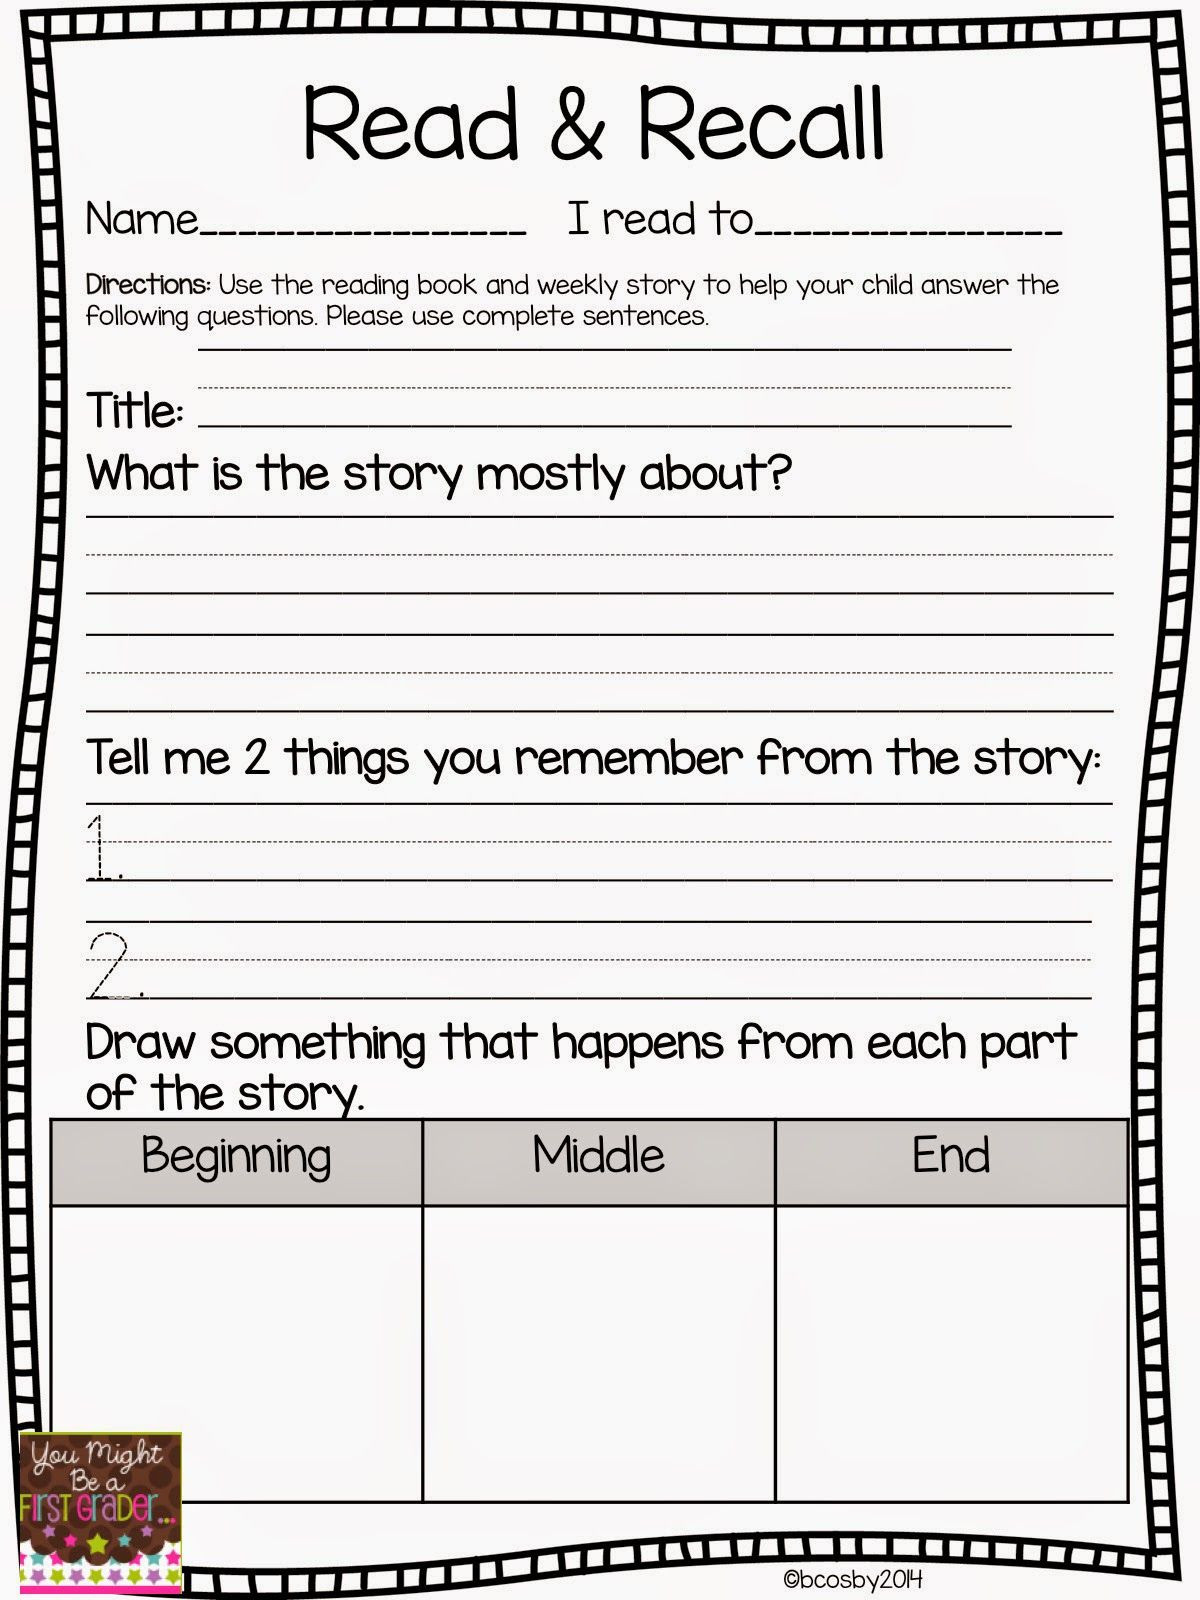 4th Grade Reading Response Worksheets Reading Prehension You Might Be A First Grader